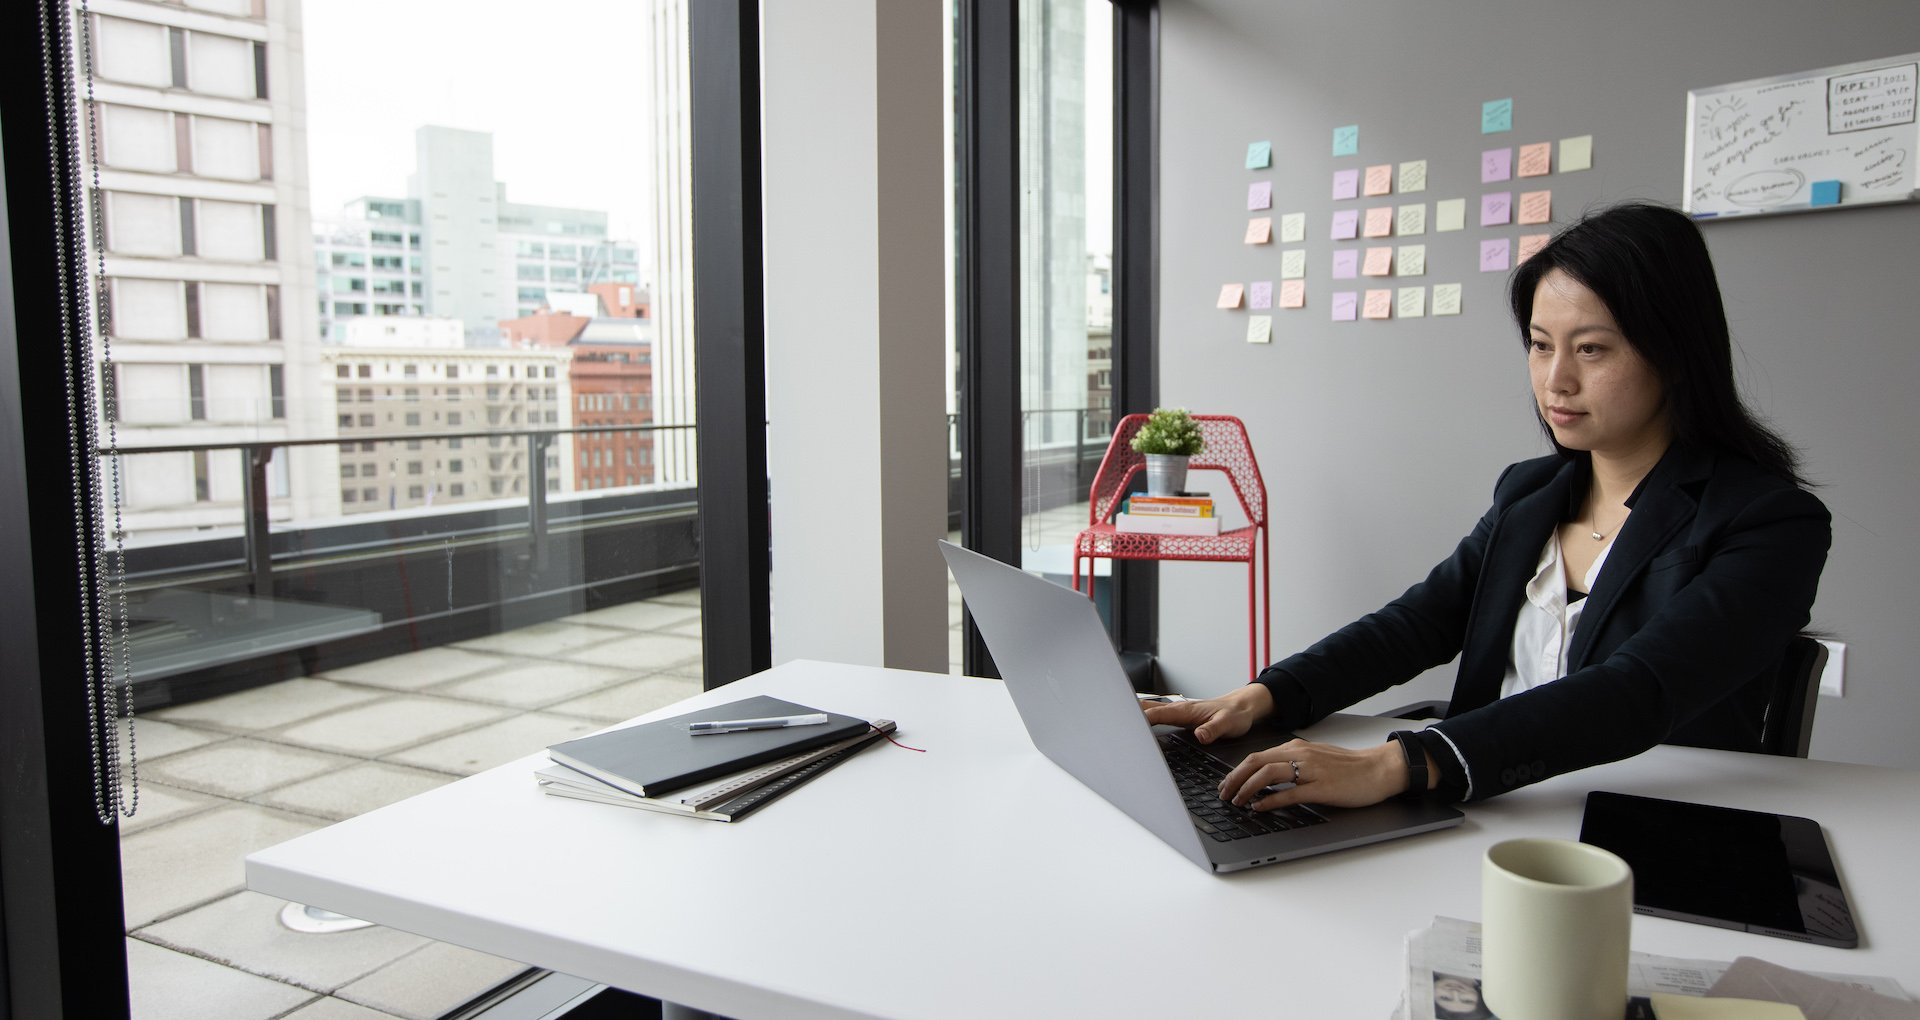 An executive works on a laptop in her office to build a successful digital transformation strategy